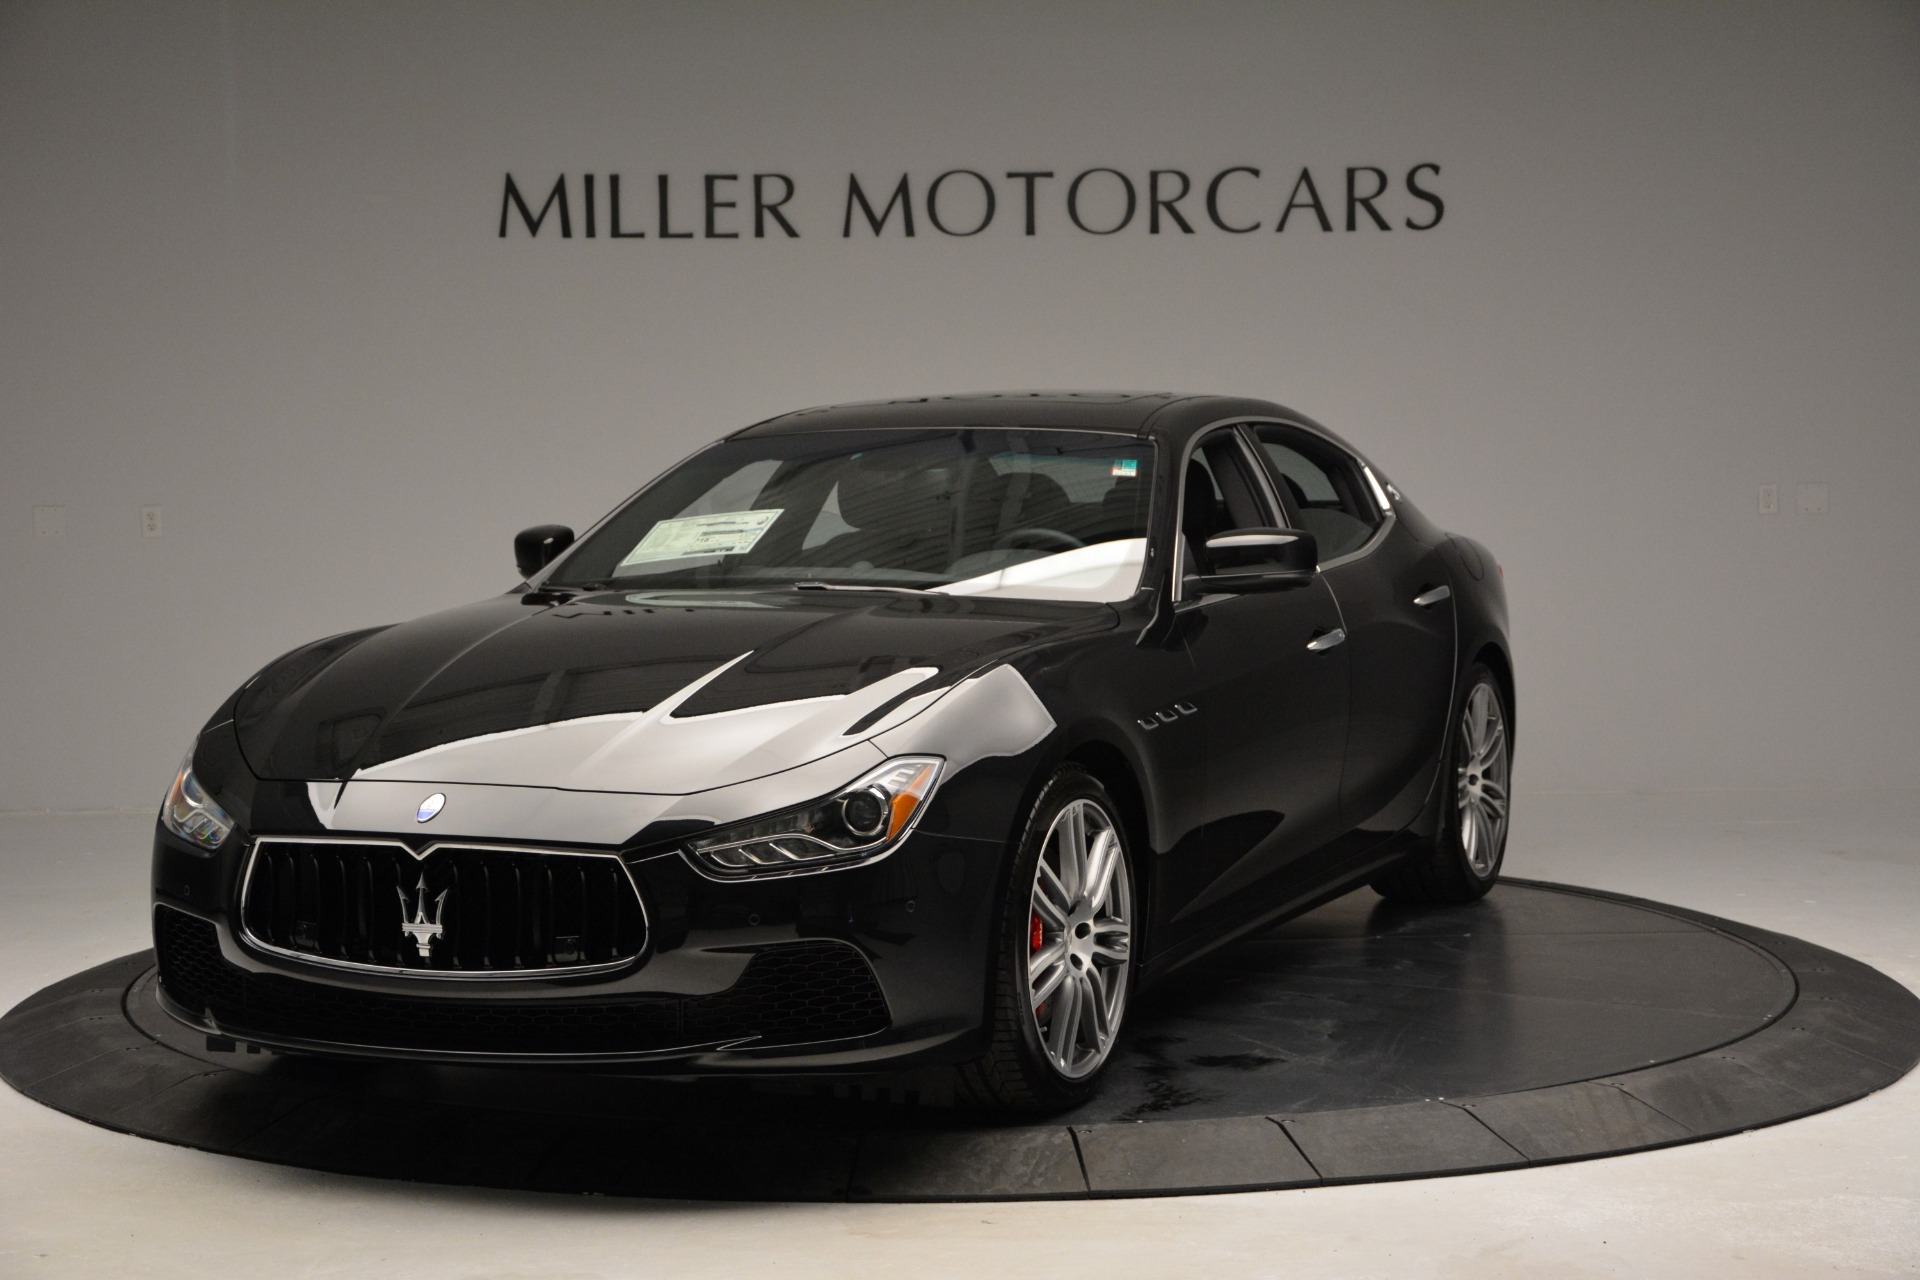 Used 2015 Maserati Ghibli S Q4 for sale Sold at Bentley Greenwich in Greenwich CT 06830 1